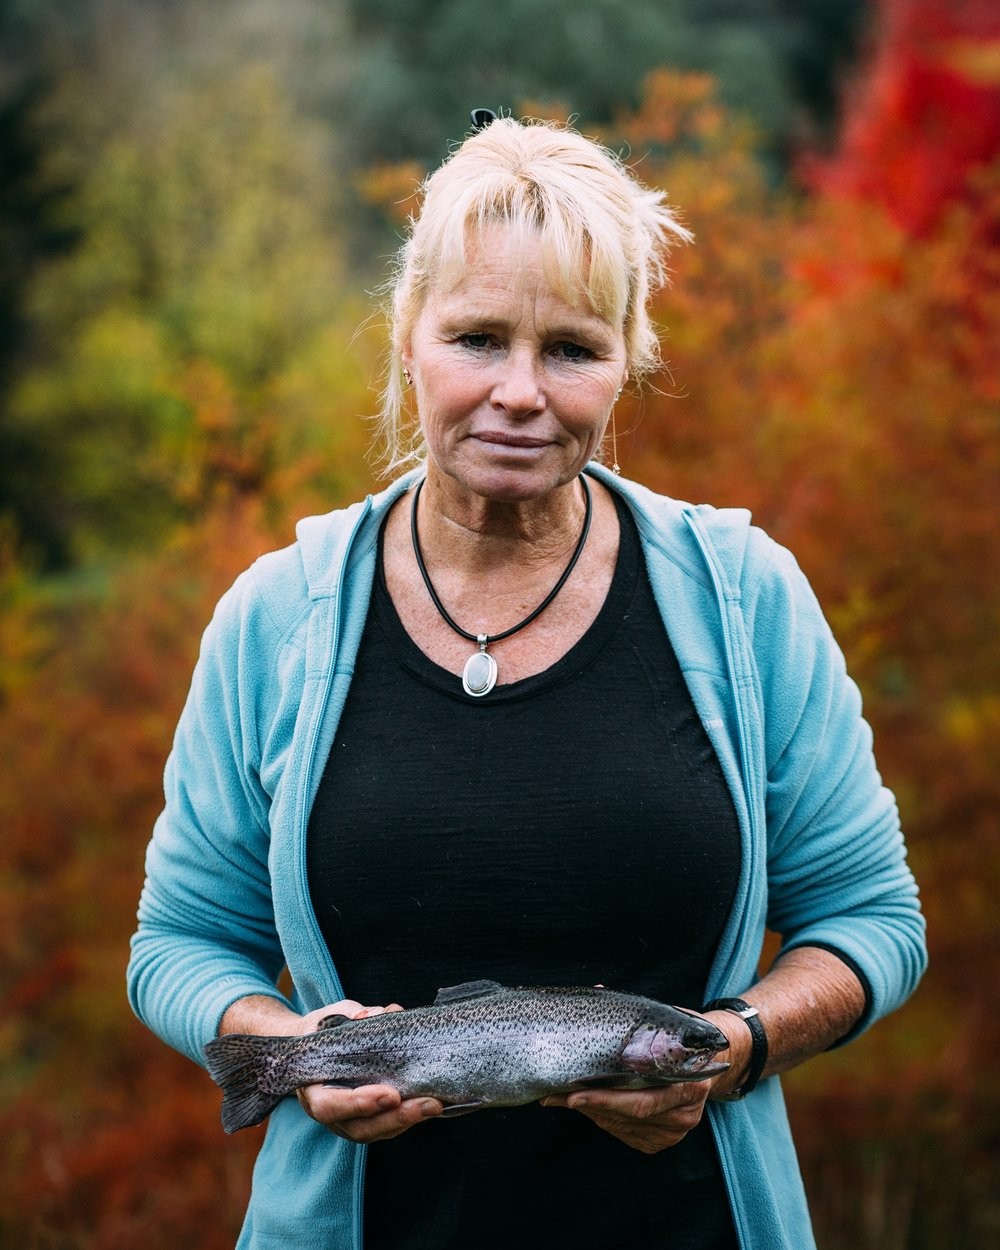 Sally Hall holding a trout on her farm, Mountain Fresh Trout and Salmon Farm, Harrietville (Victoria), 2017, Photographer: Catherine Forge, Source: Museums Victoria.